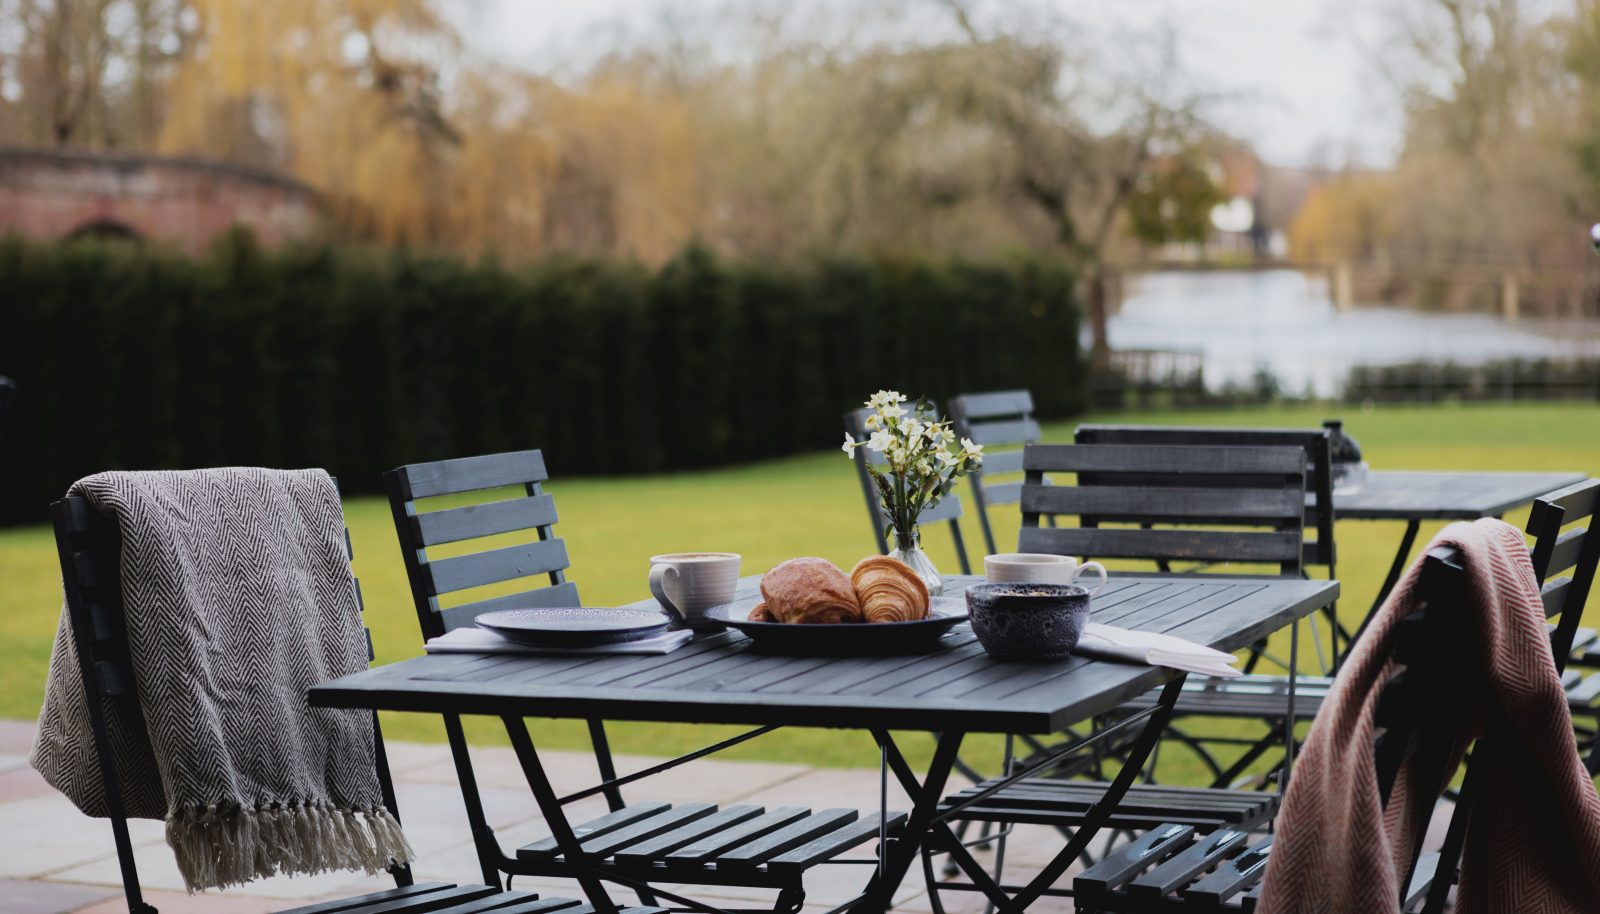 outdoor tables and chairs with breakfast pastries and coffee and blankets